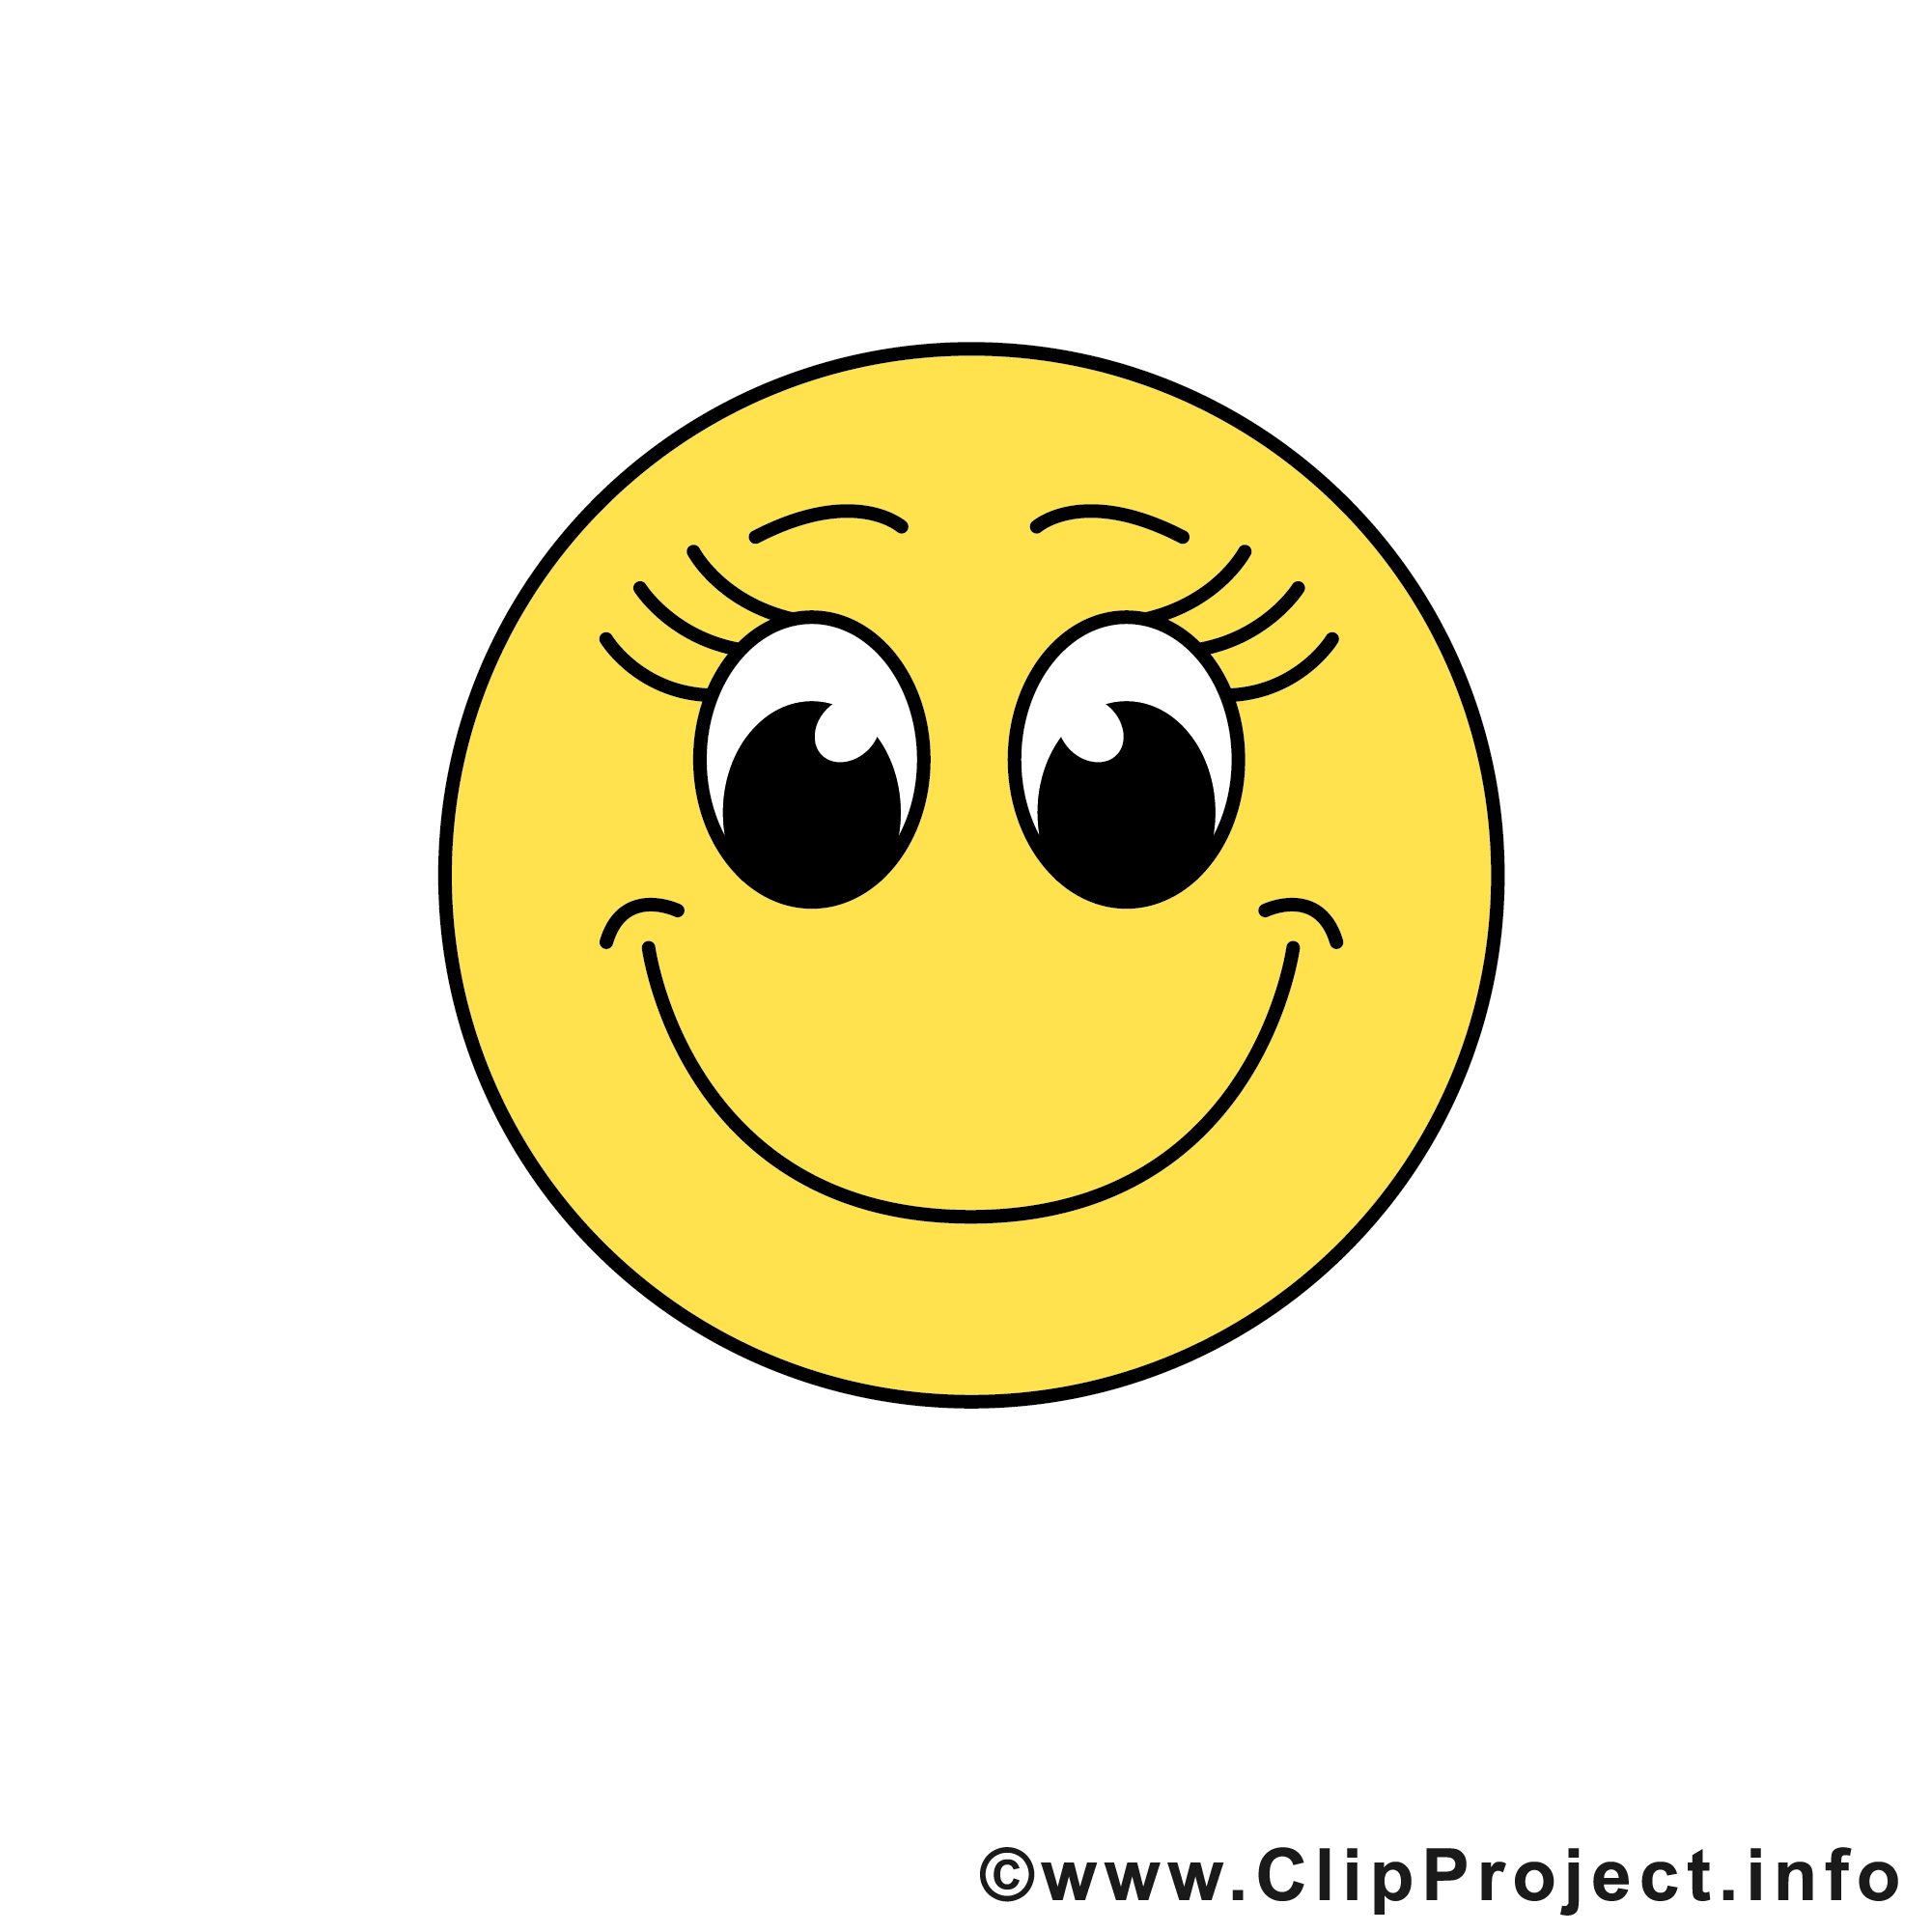 Smiley sourire dessin gratuit t l charger smileys dessin picture image graphic clip art - Dessins gratuits a telecharger ...